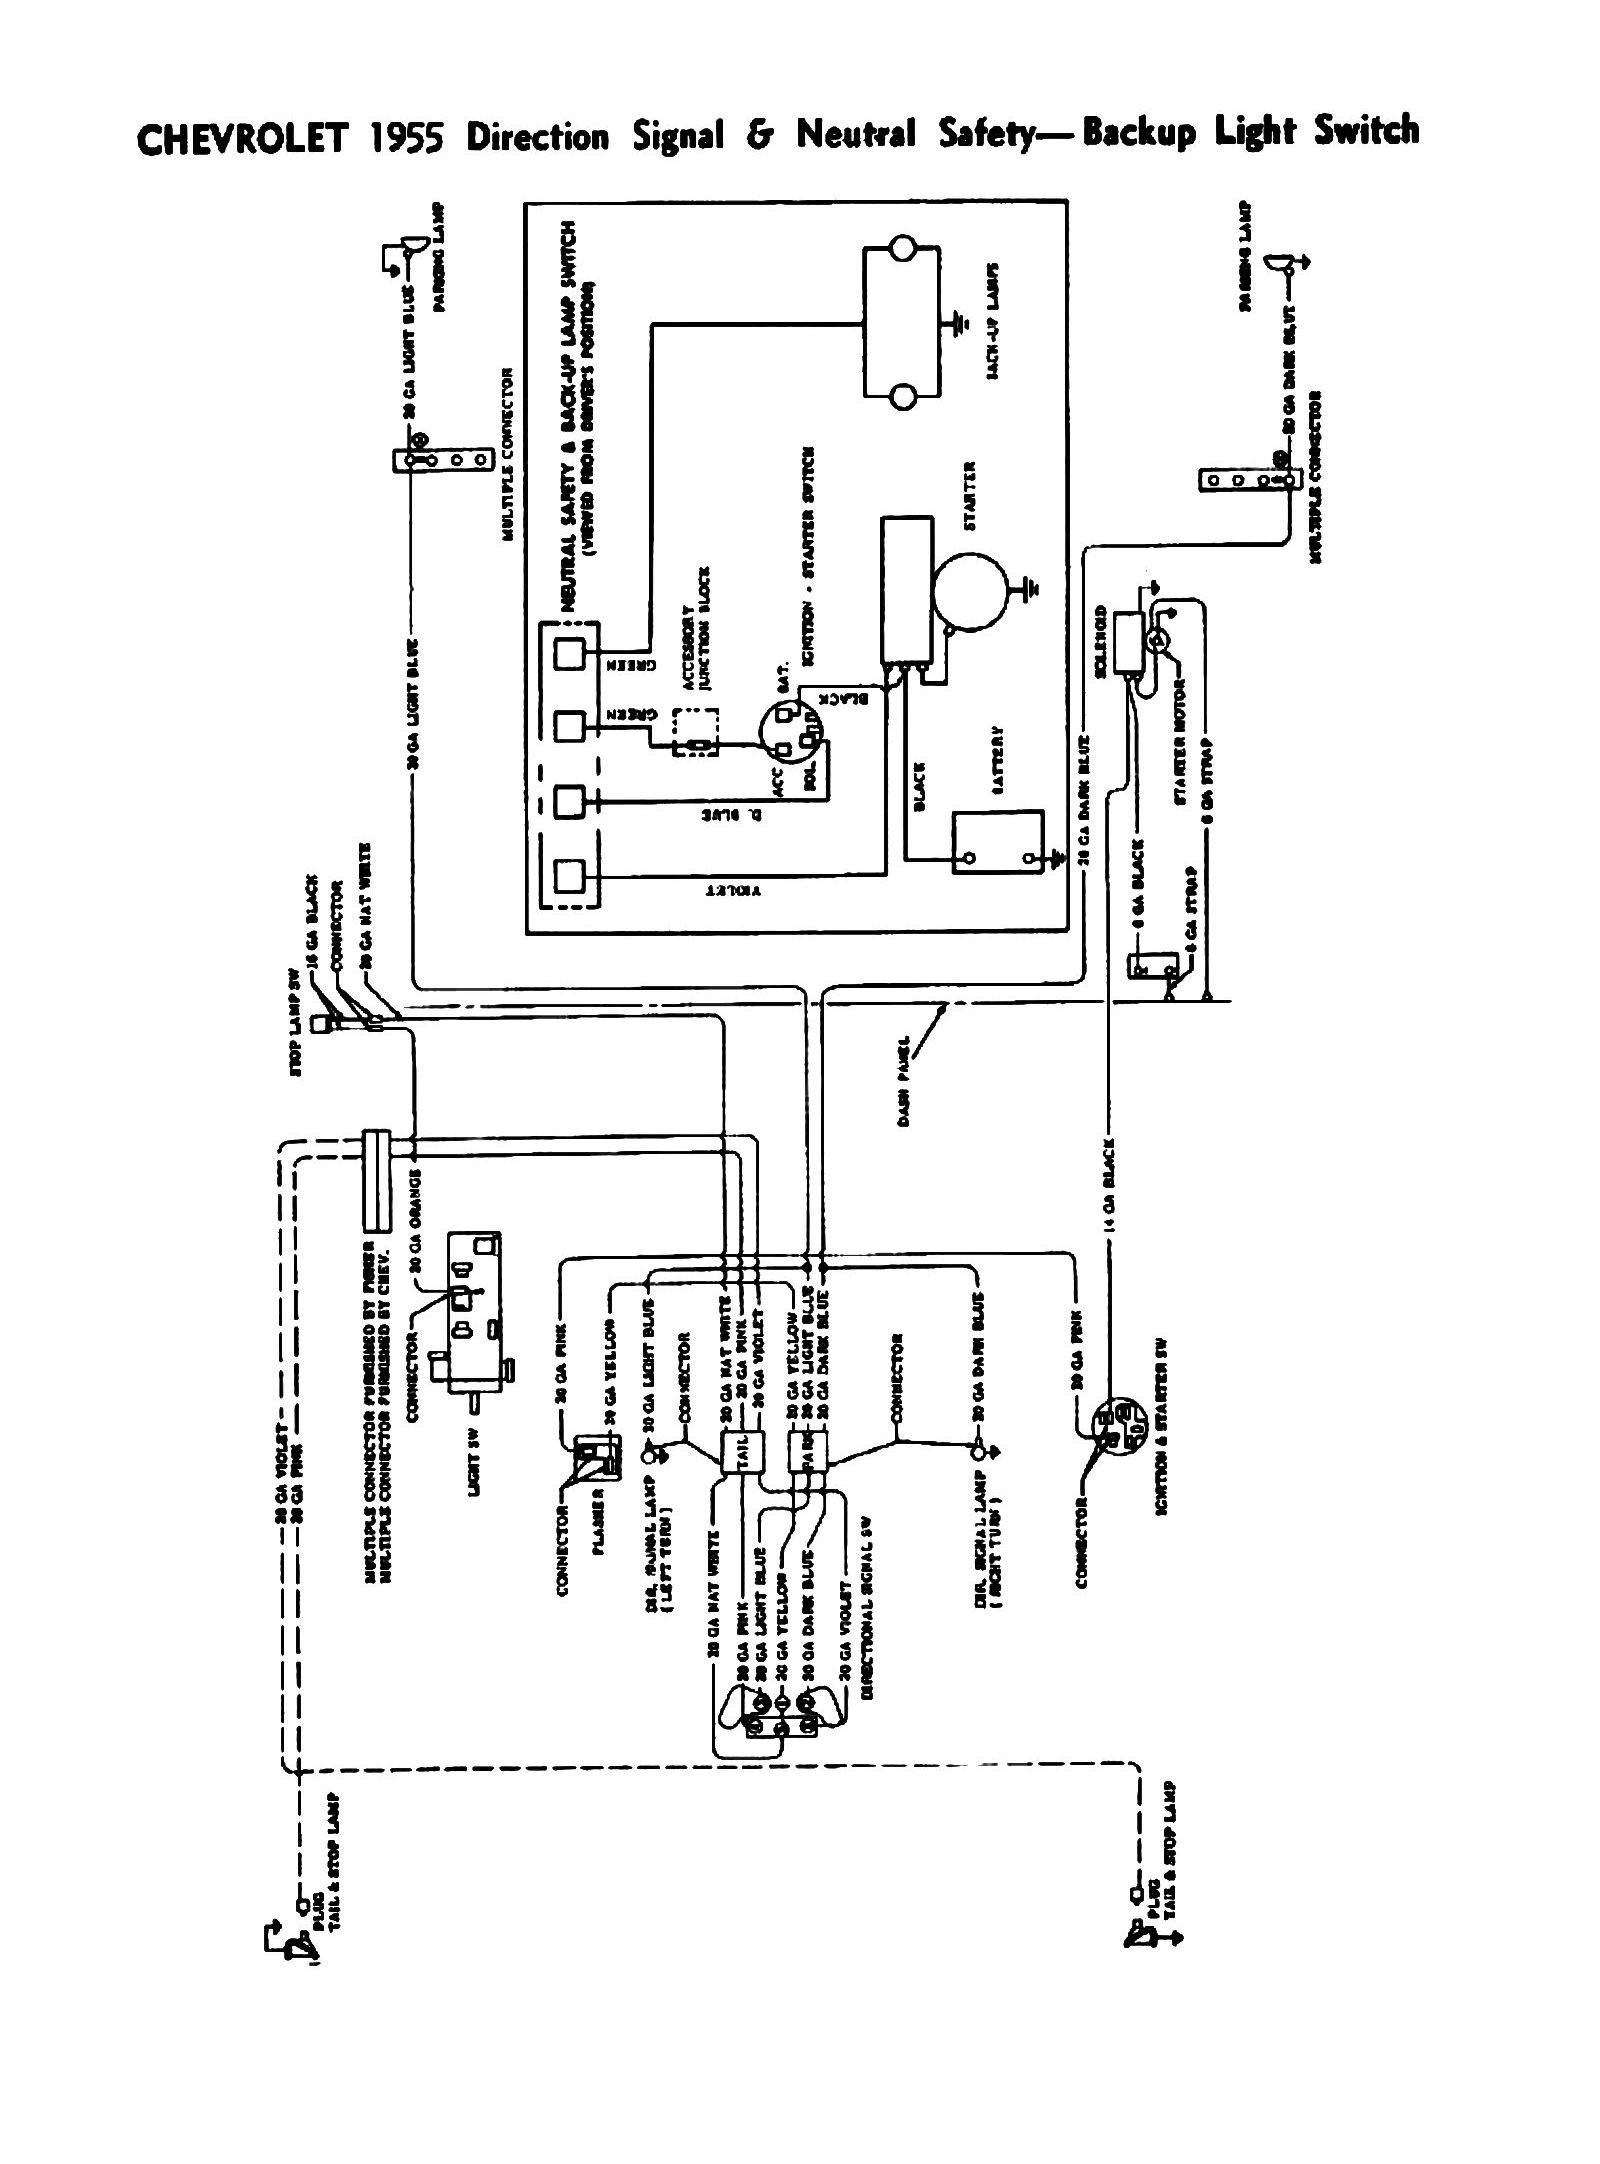 1985 Chevy Truck Wiring Diagram 1985 Gm Headlight Switch Diagram Wiring Diagram Used Of 1985 Chevy Truck Wiring Diagram 86 Chevy Truck Wiring Harness Wiring Diagram Datasource